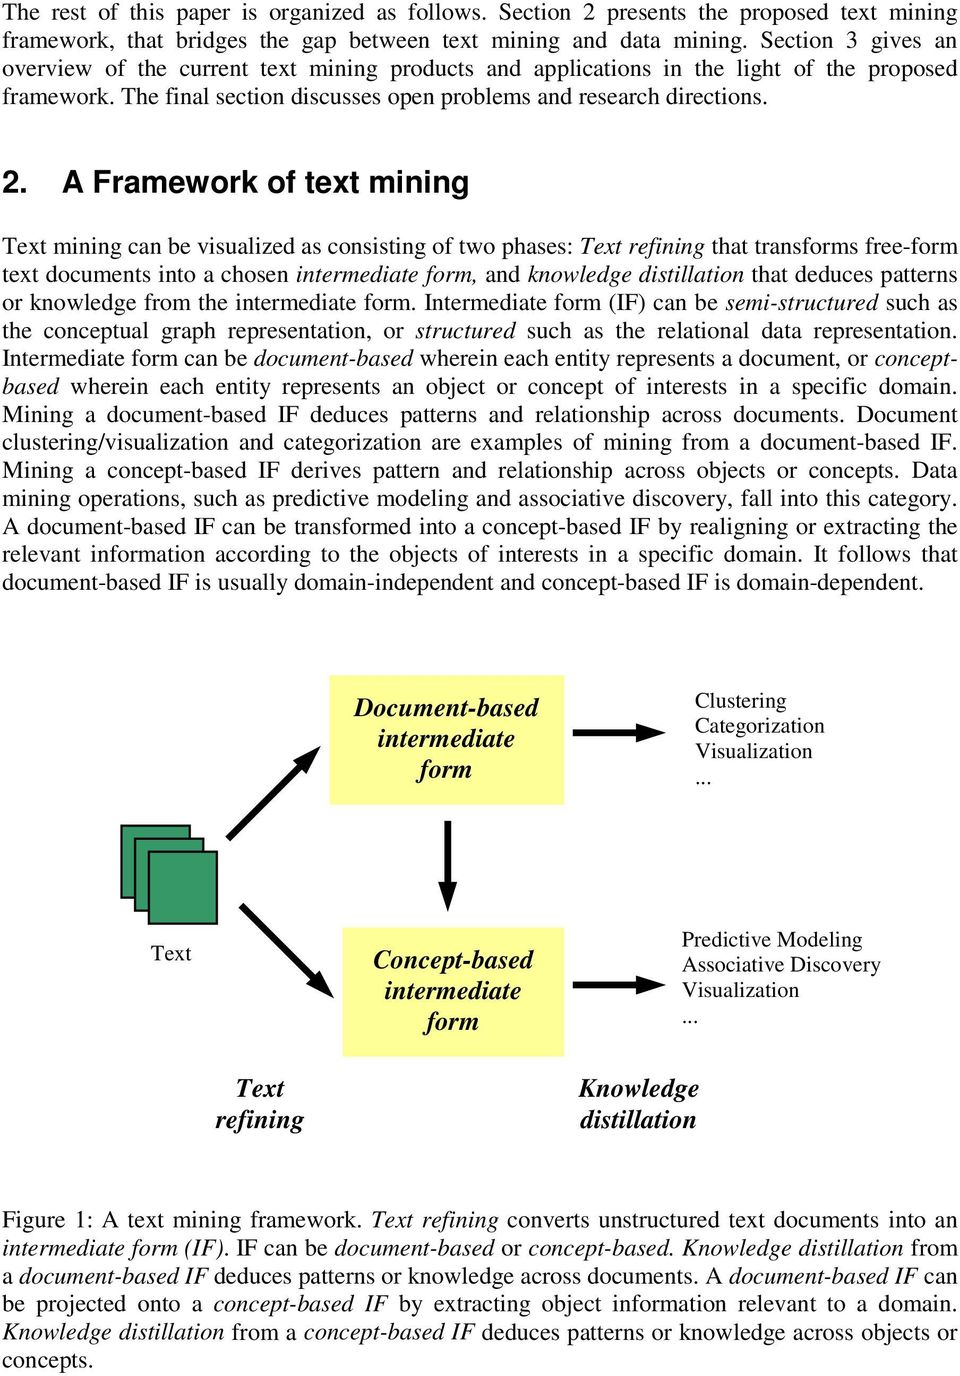 A Framework of text mining Text mining can be visualized as consisting of two phases: Text refining that transforms free-form text documents into a chosen intermediate form, and knowledge